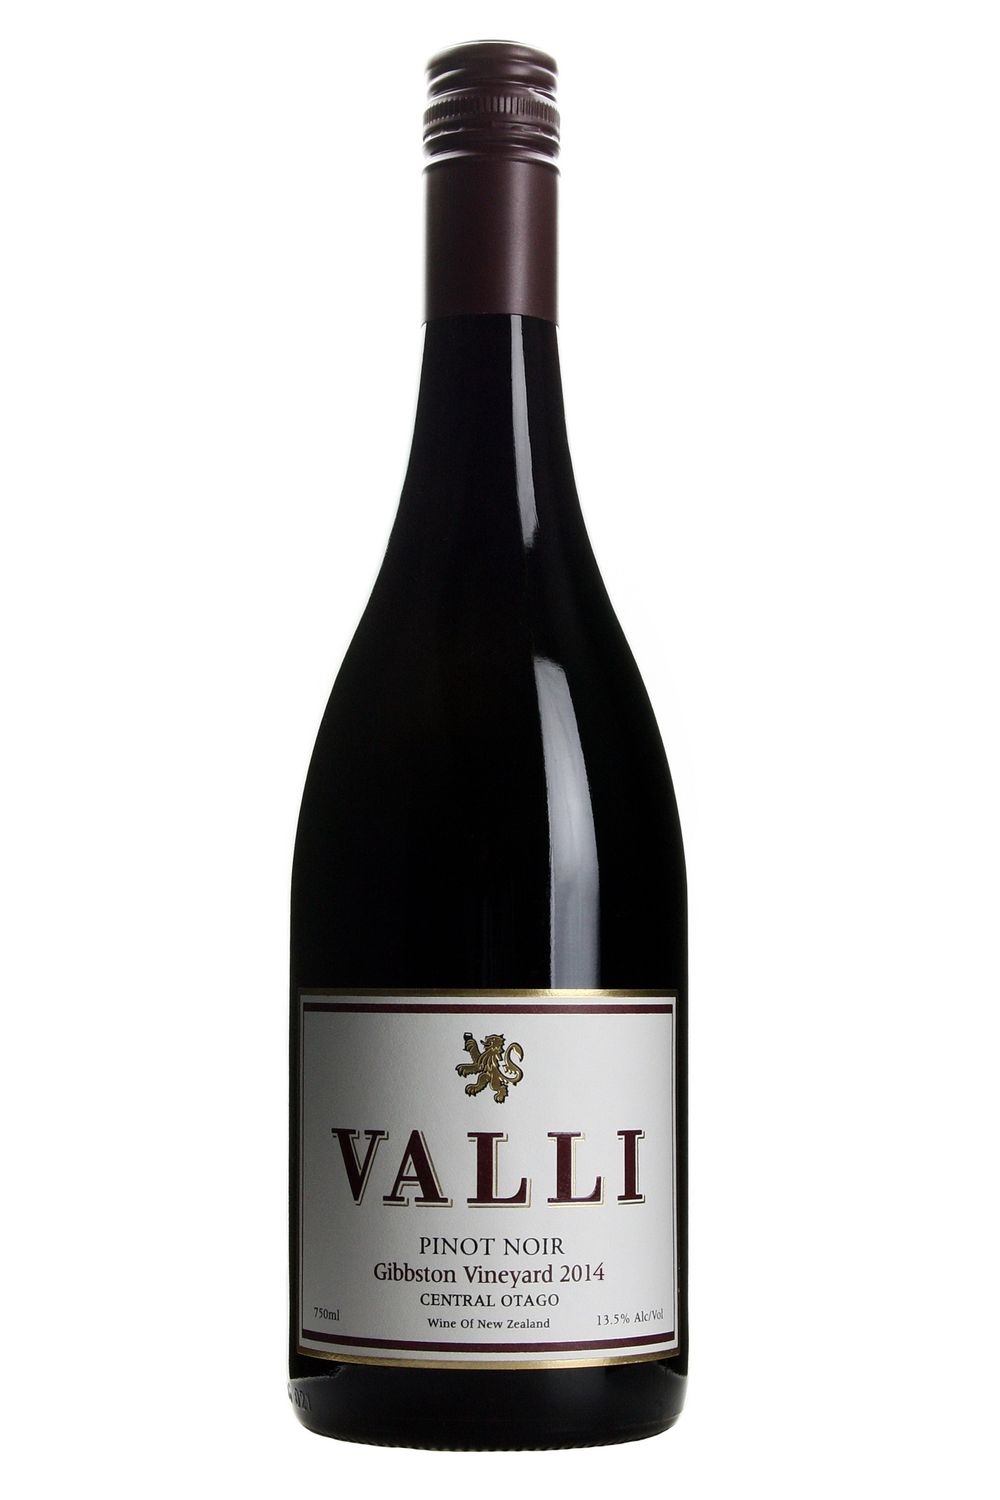 Valli Pinot Noir 2014 Gibbston